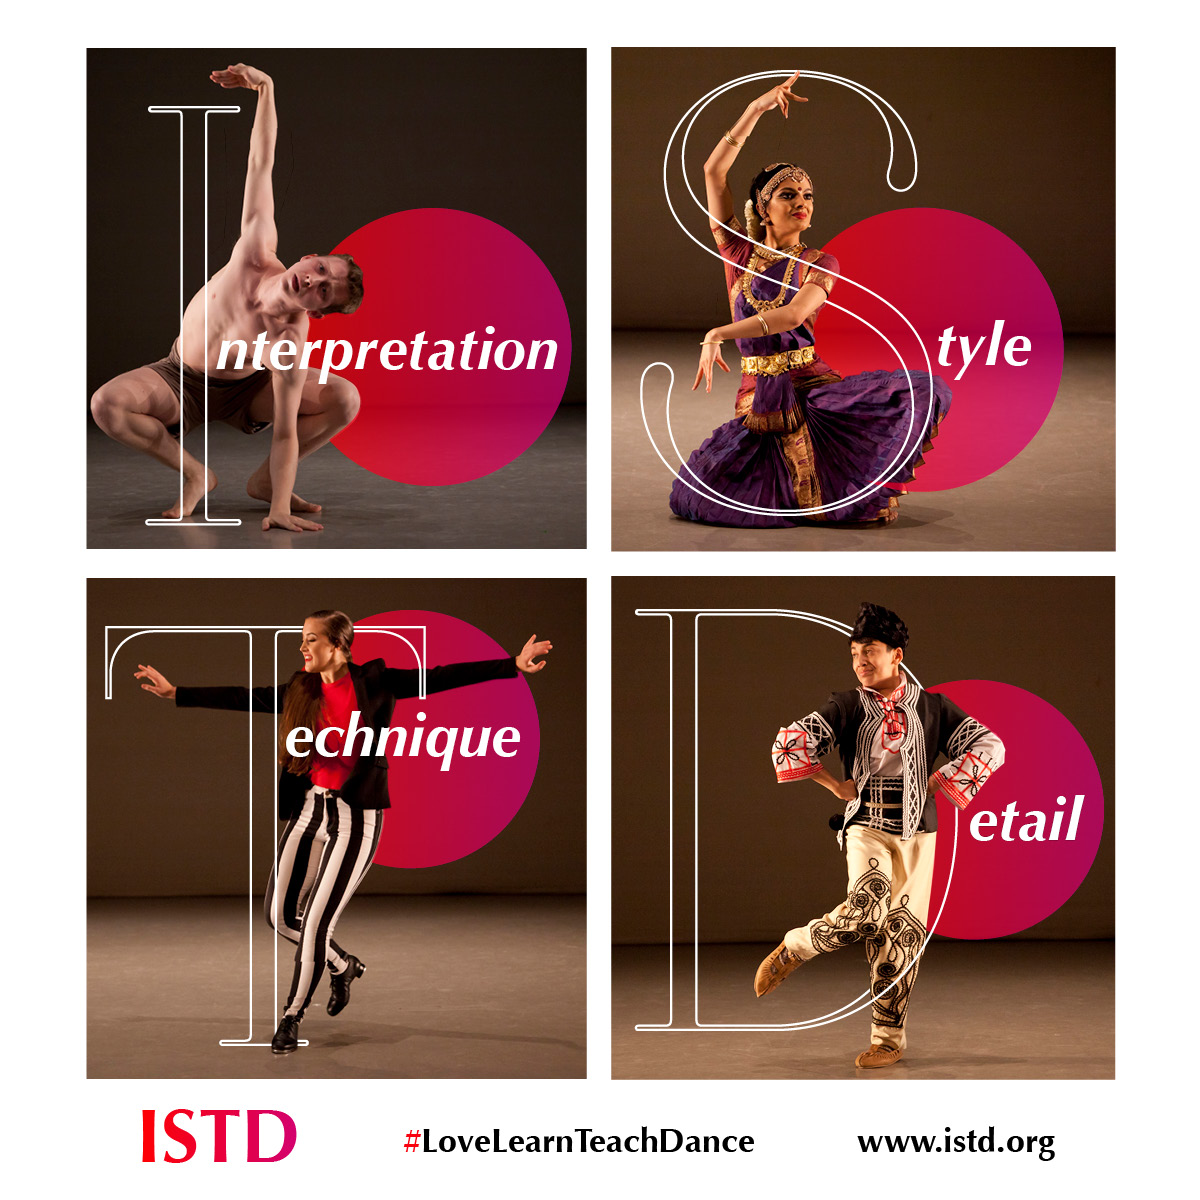 ISTD is for